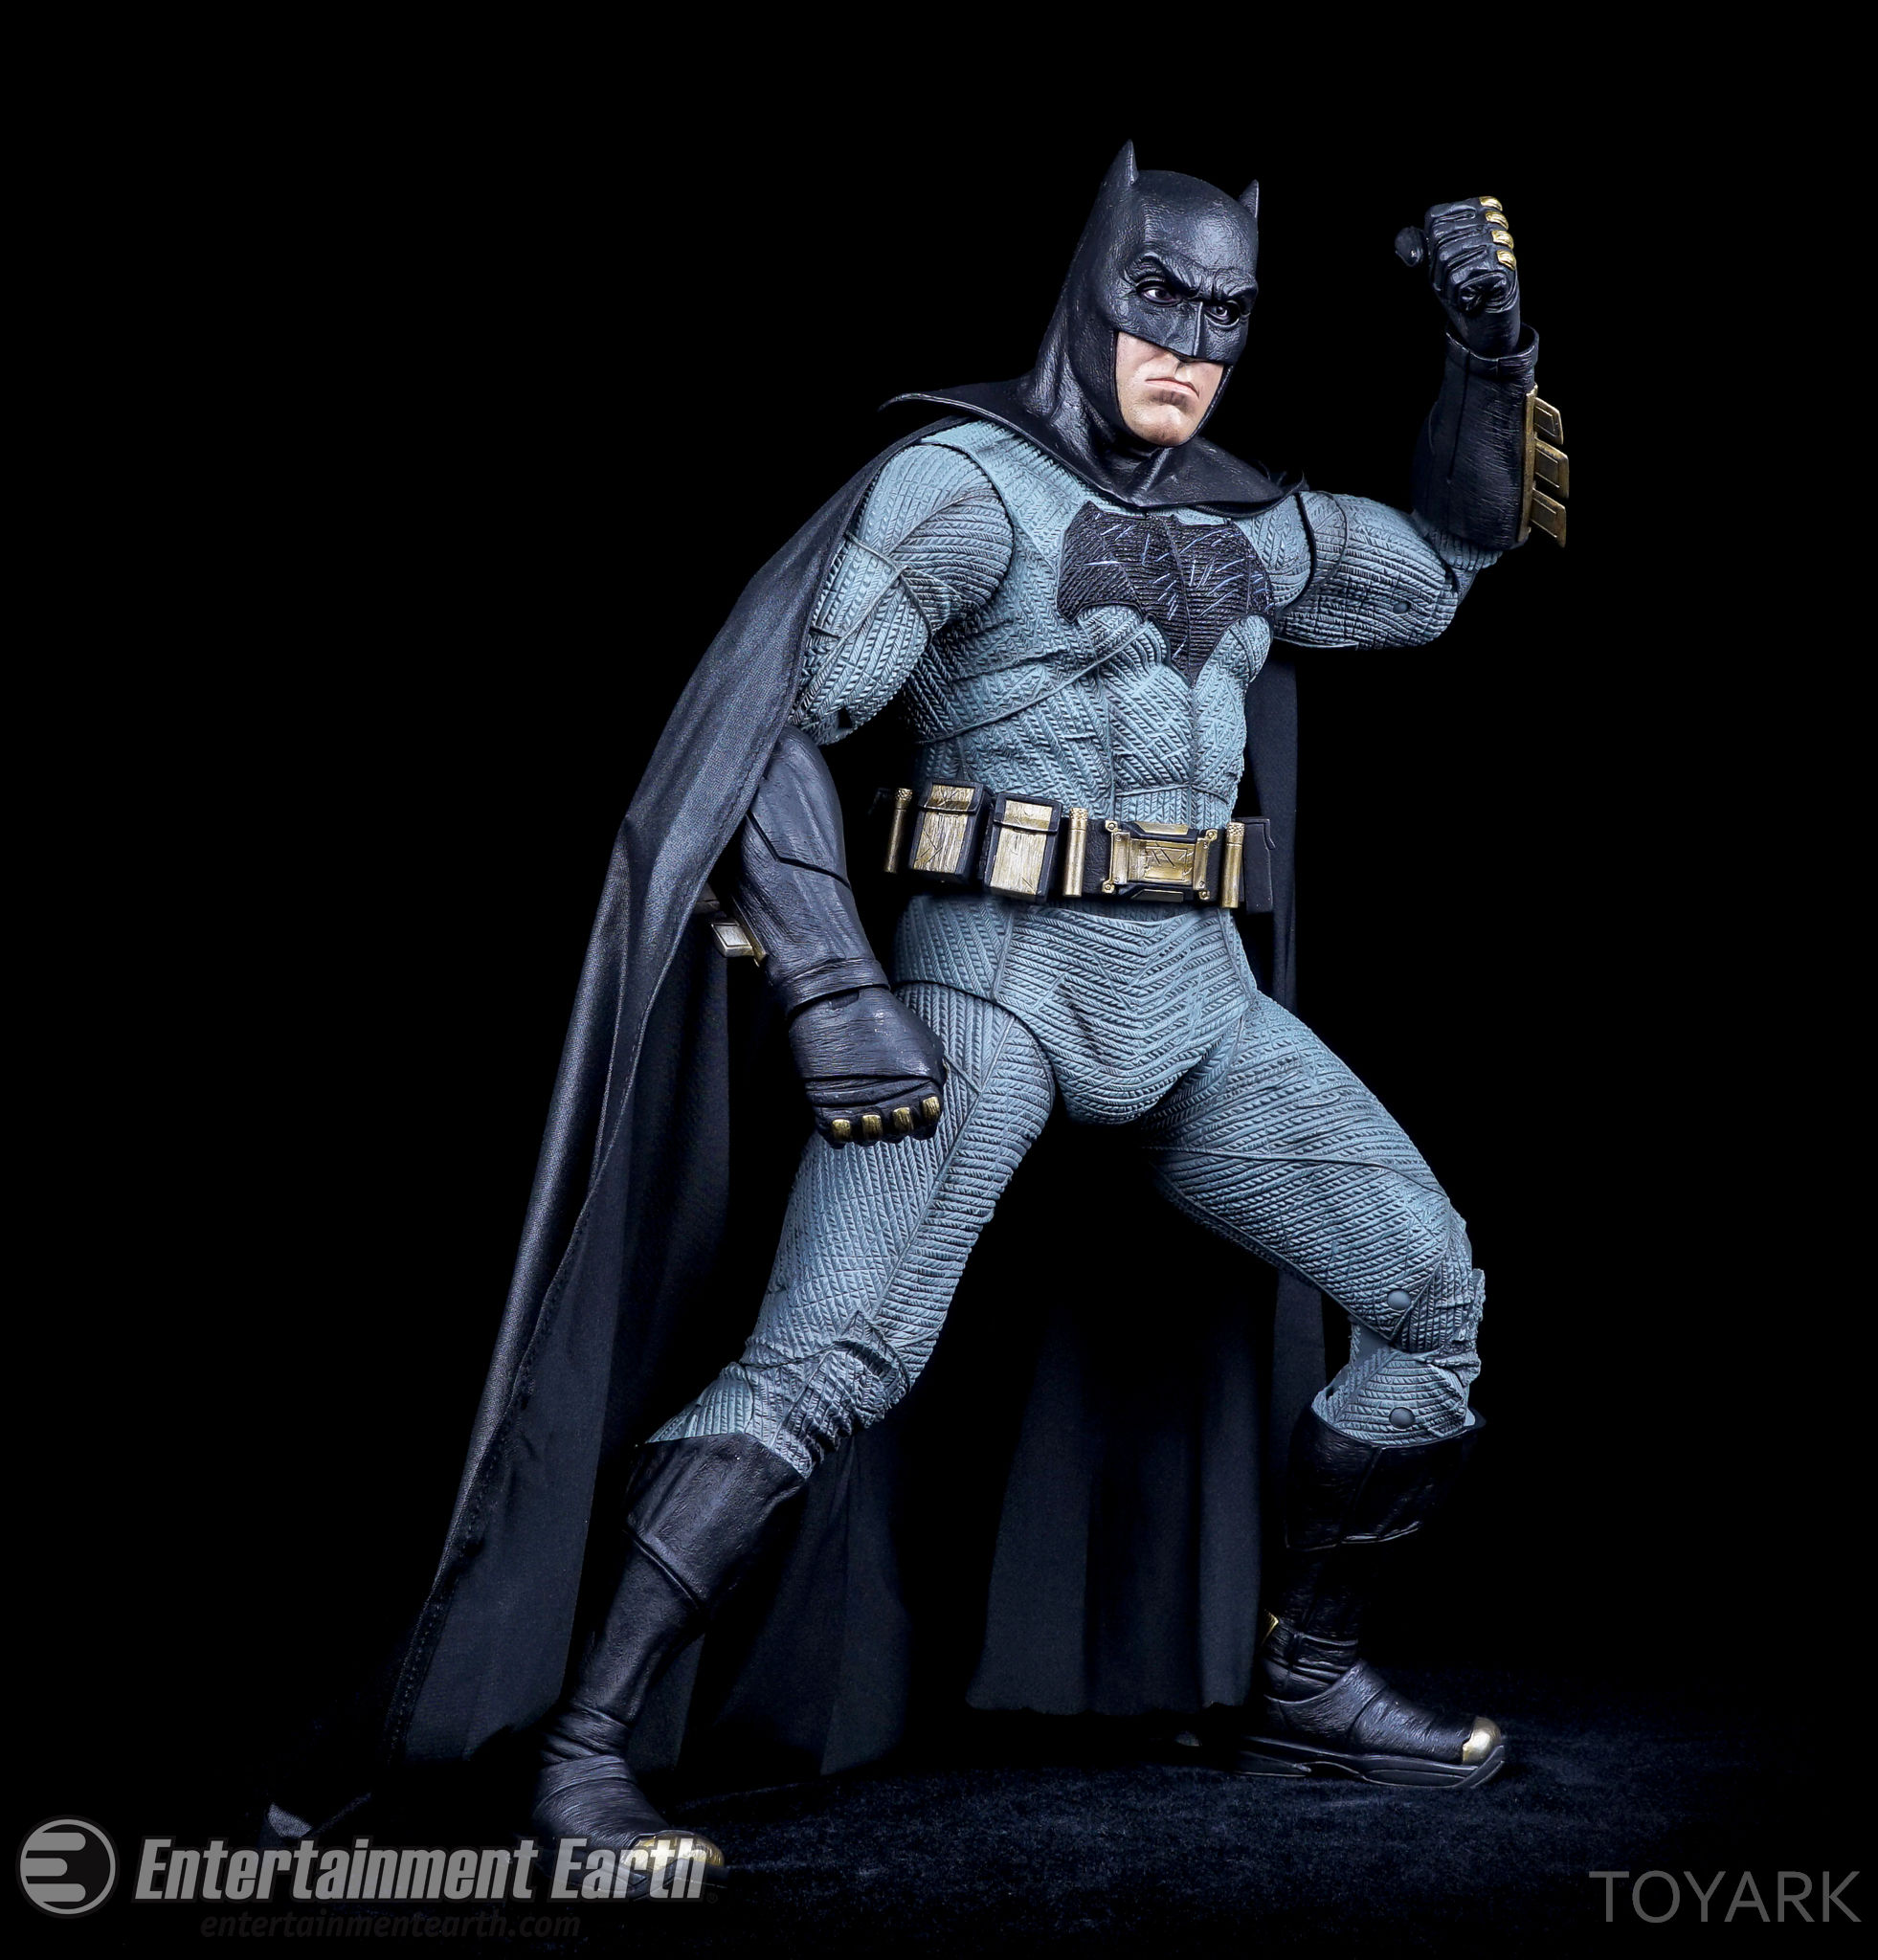 http://news.toyark.com/wp-content/uploads/sites/4/2016/06/NECA-BvS-Quarter-Scale-Batman-027.jpg